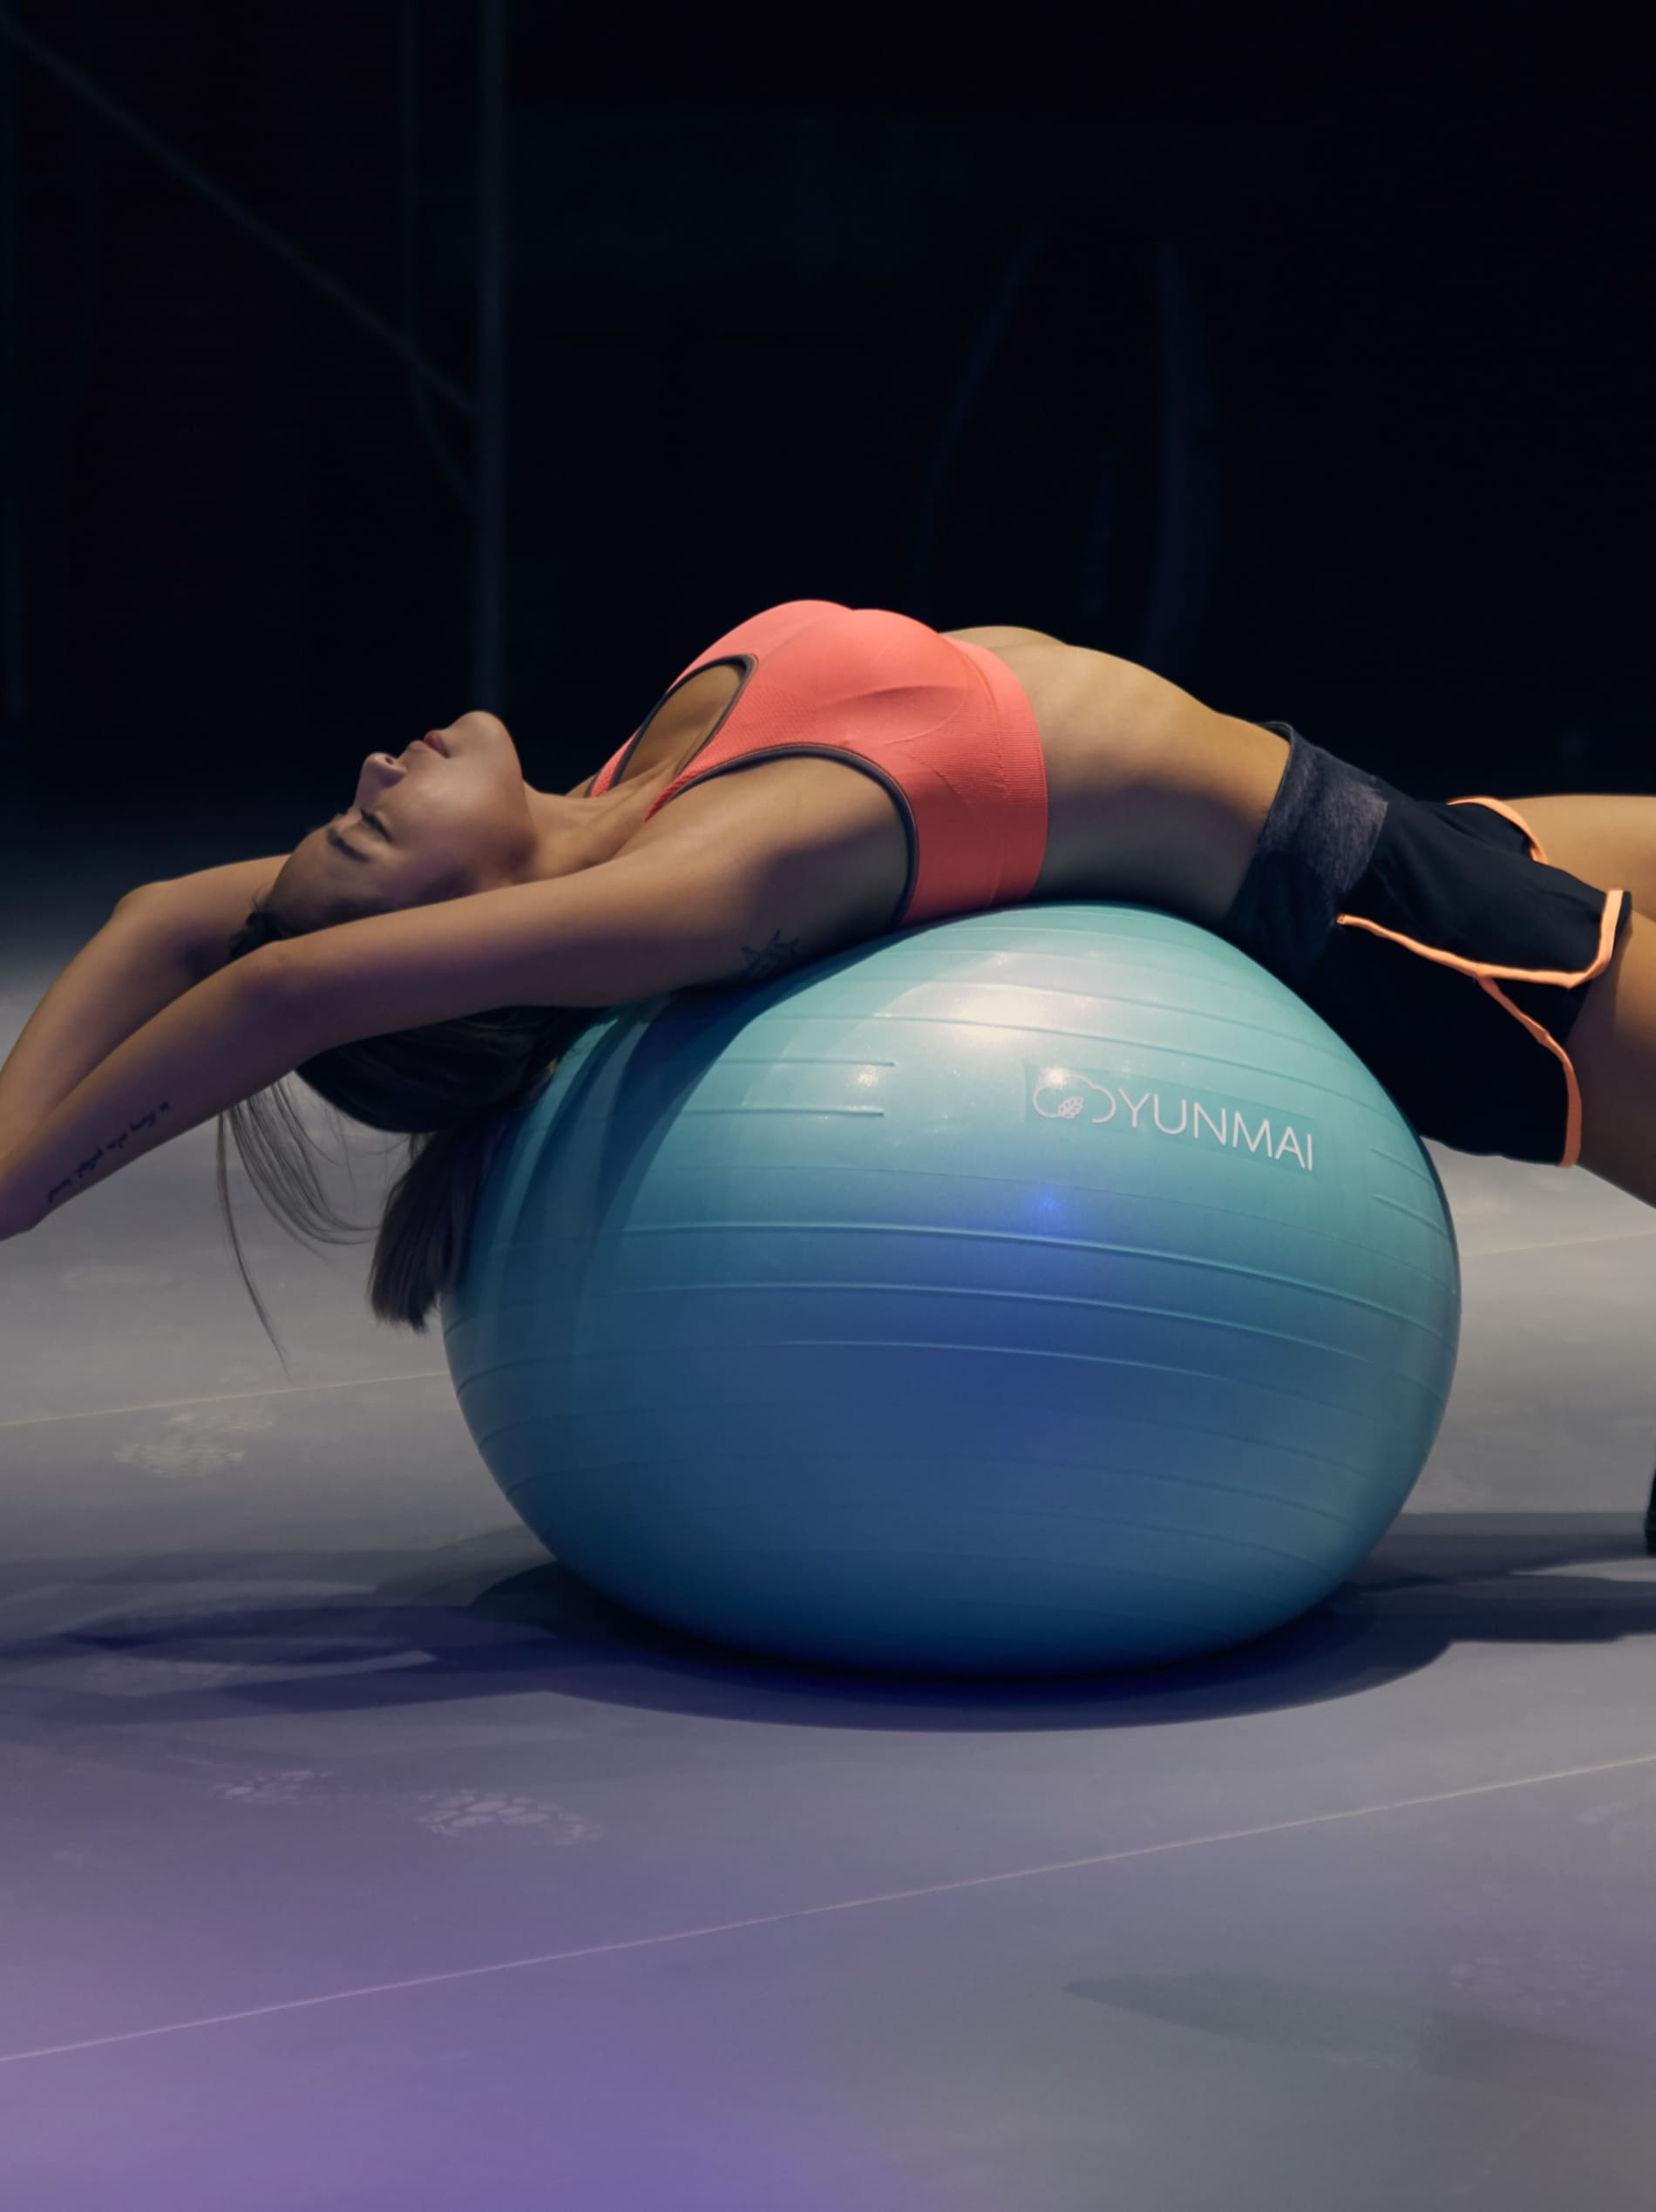 Girl stretching on a ball